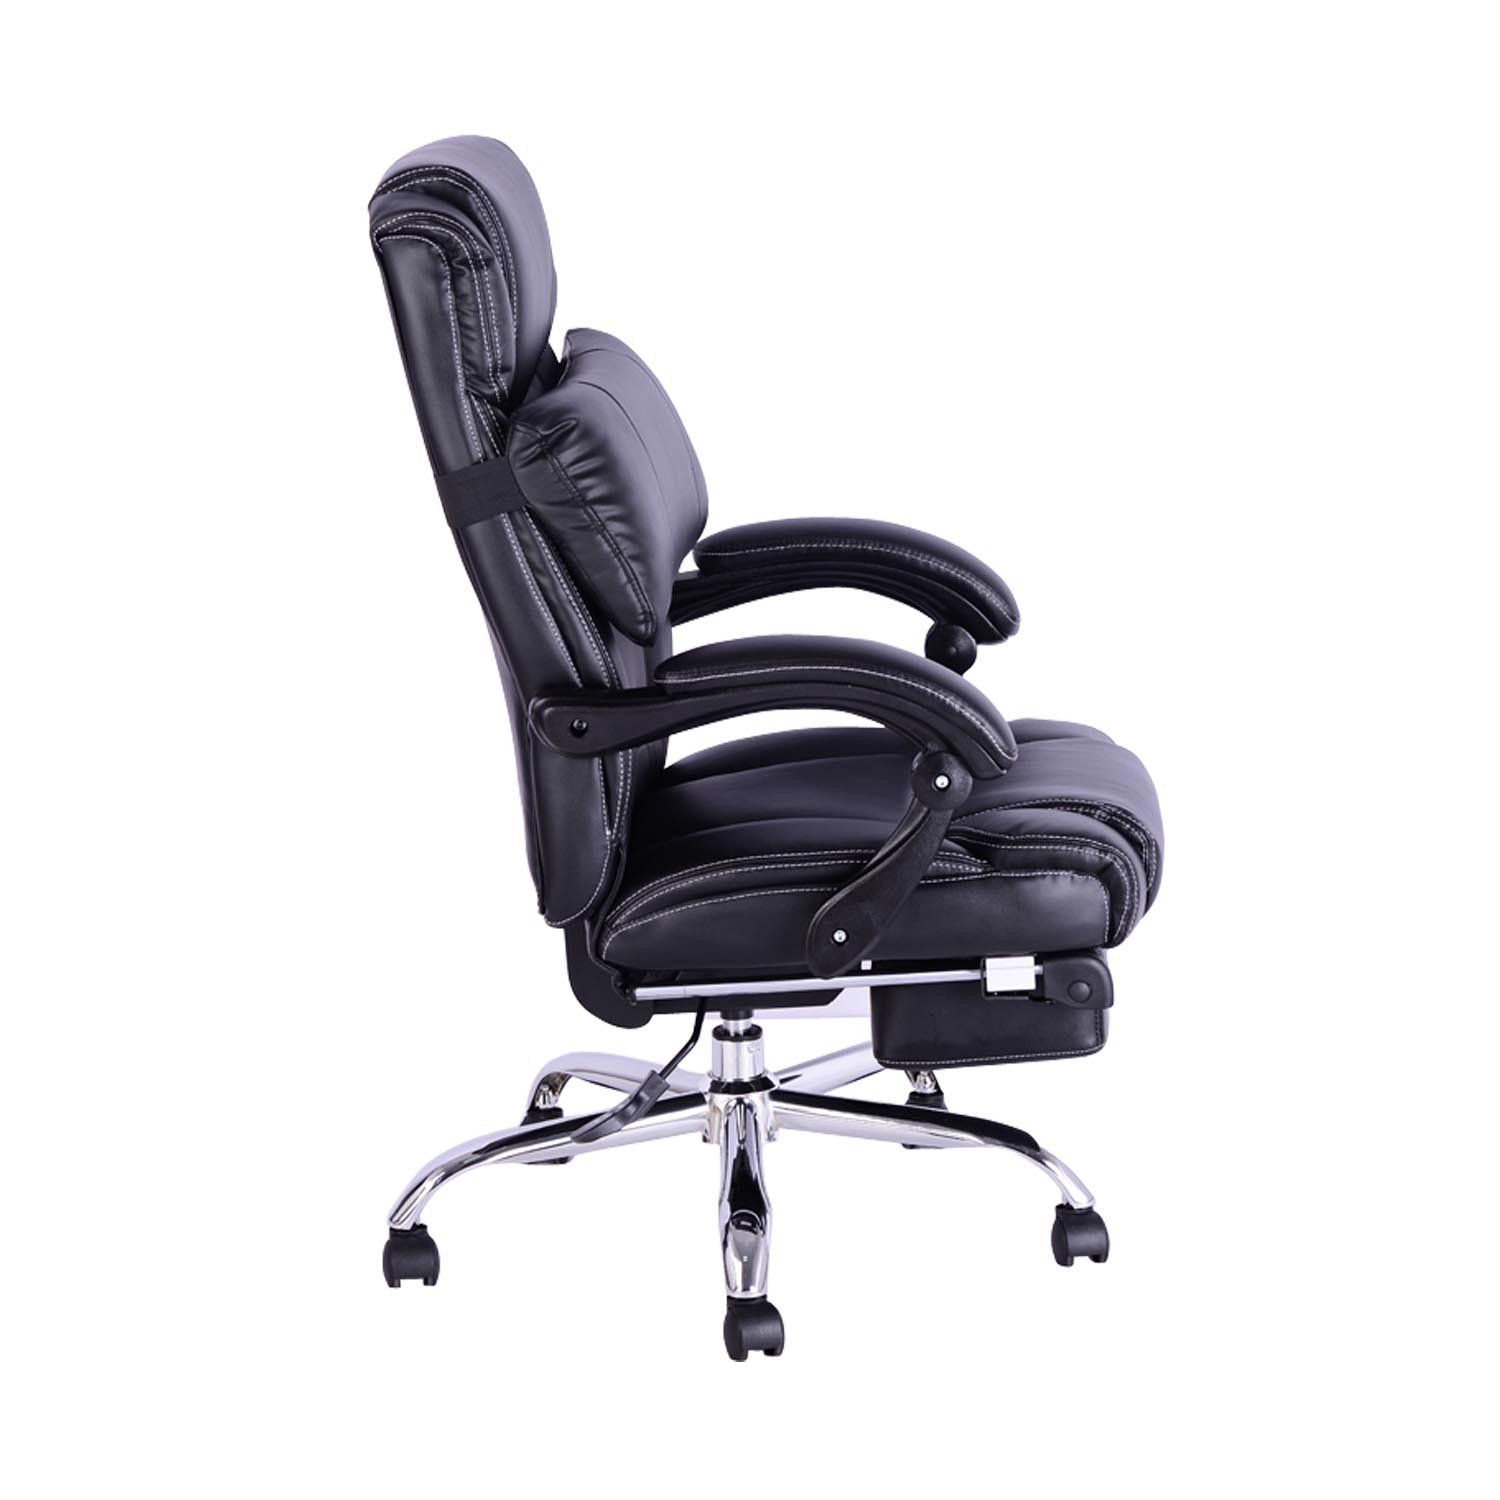 Viva Office Chair Desk Chair With Footrest Amazon Com Viva Office High Back